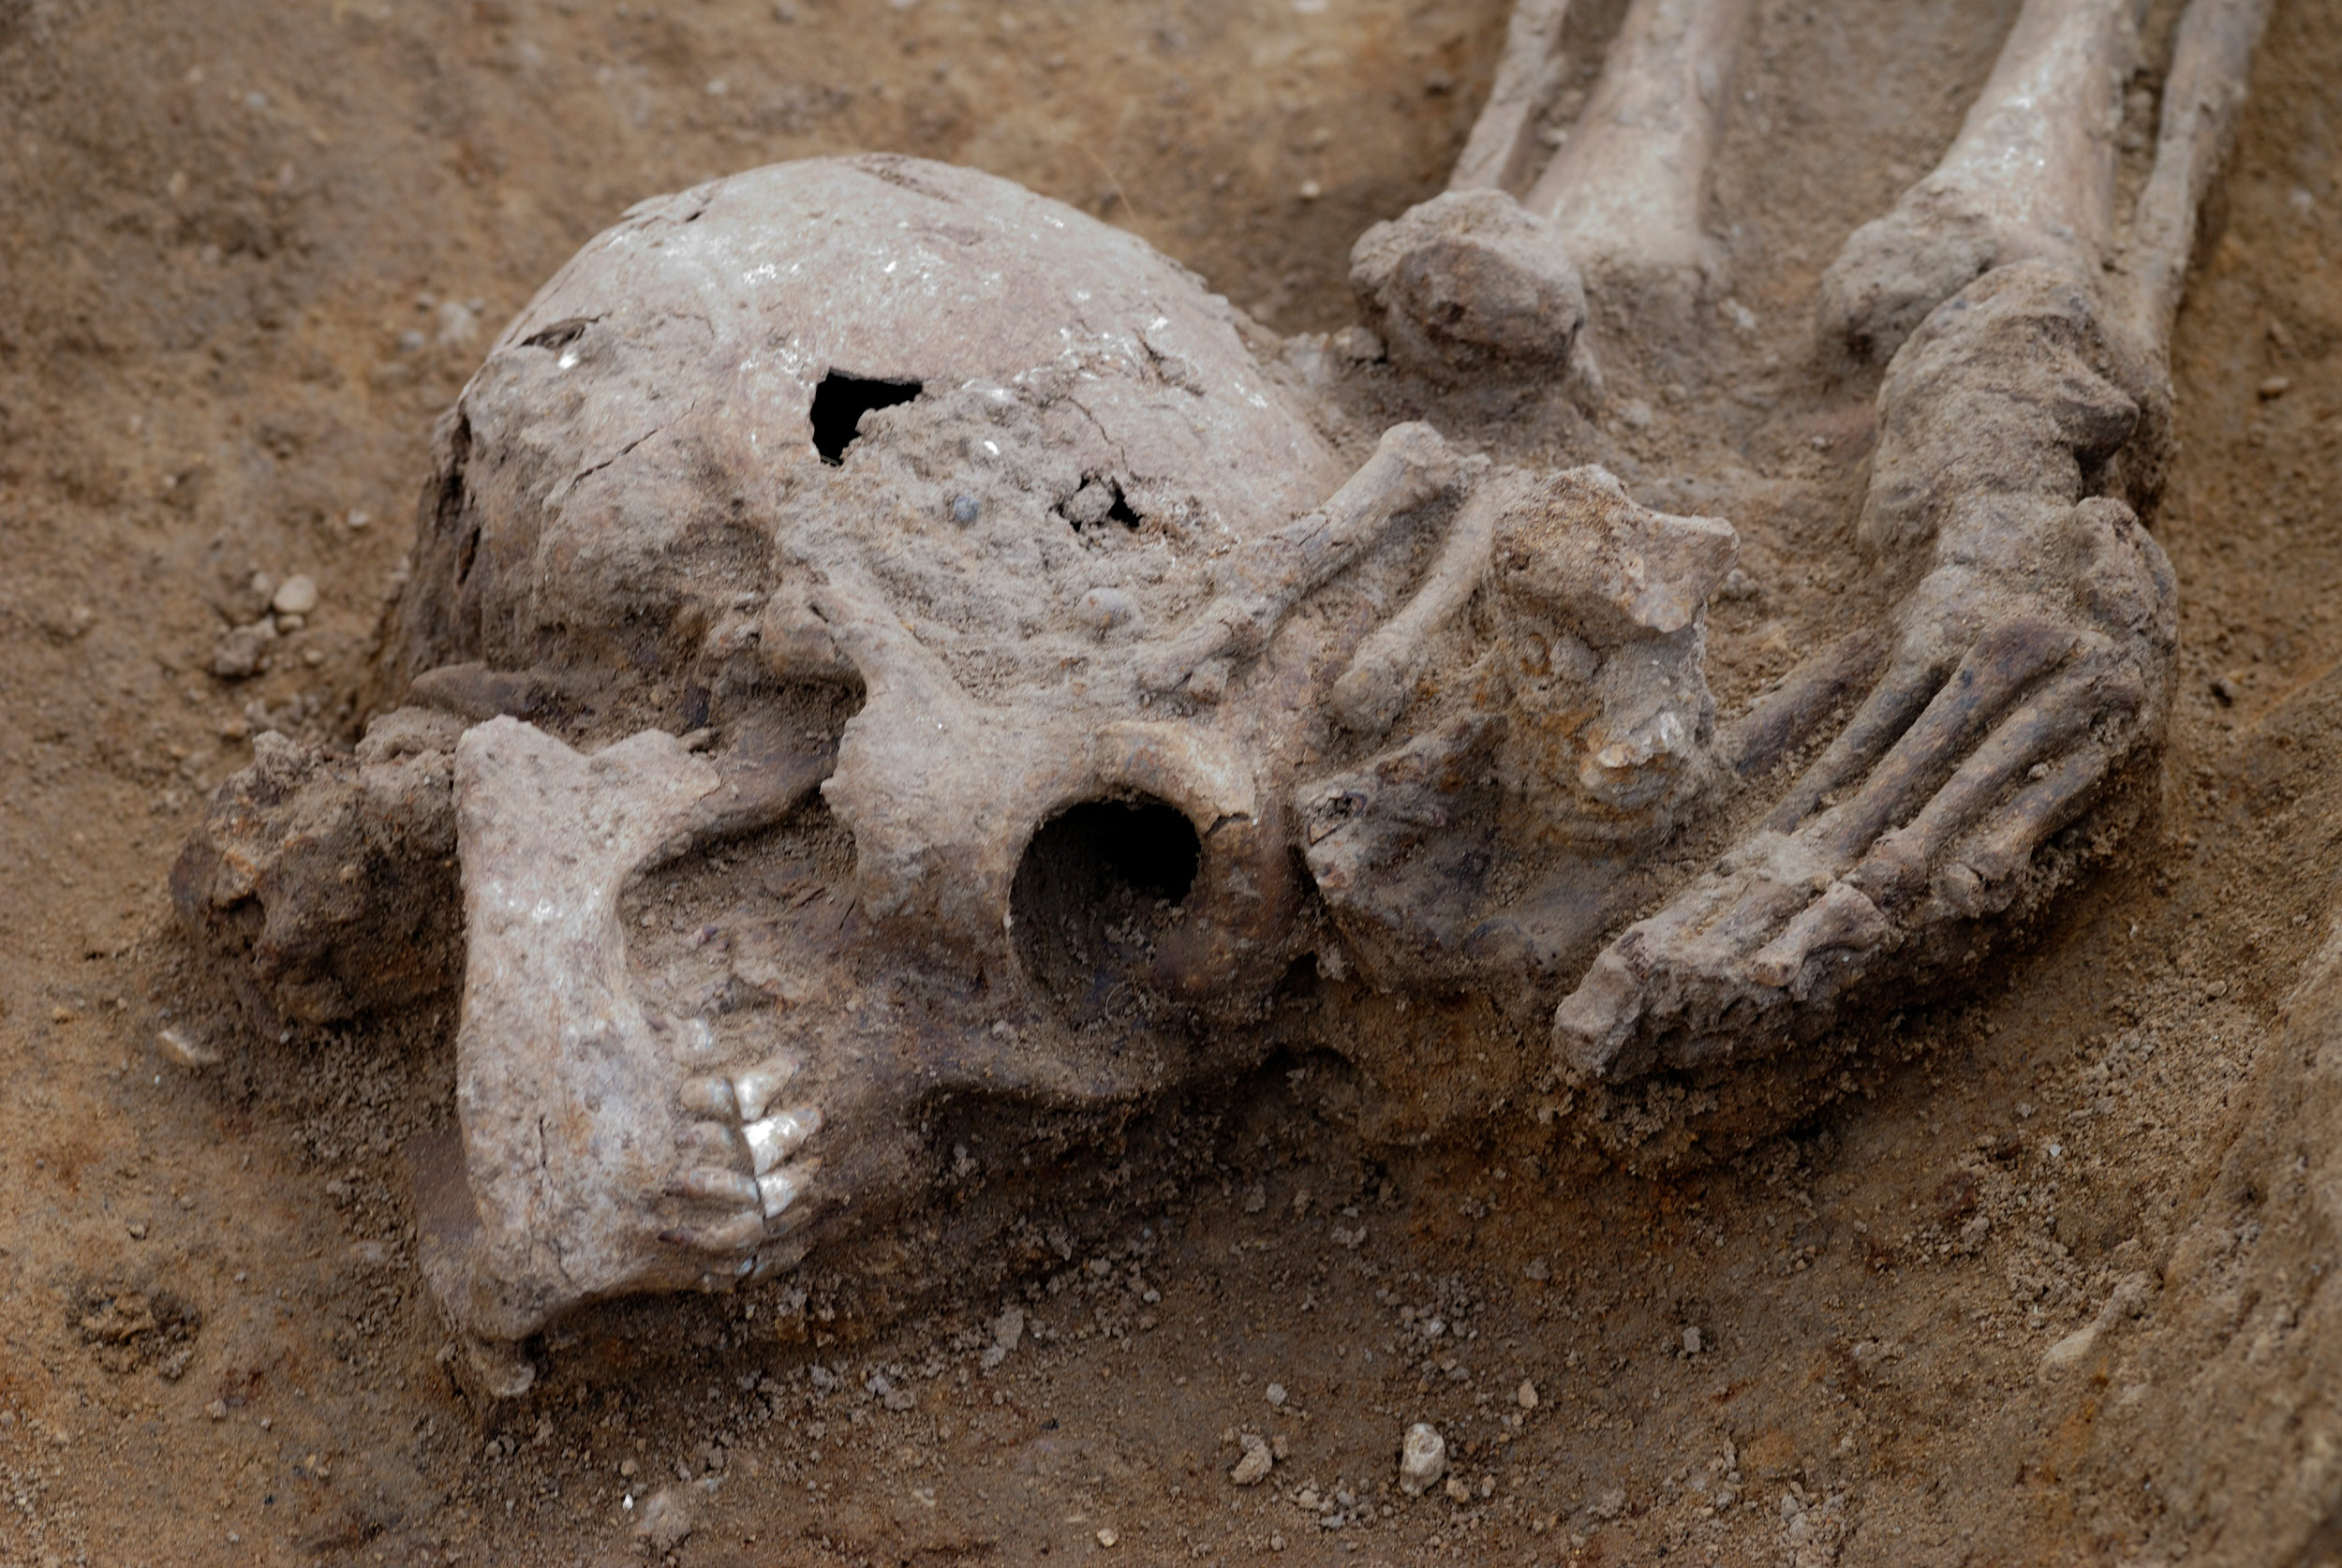 'Exceptionally high' number of decapitated bodies found at Roman burial site